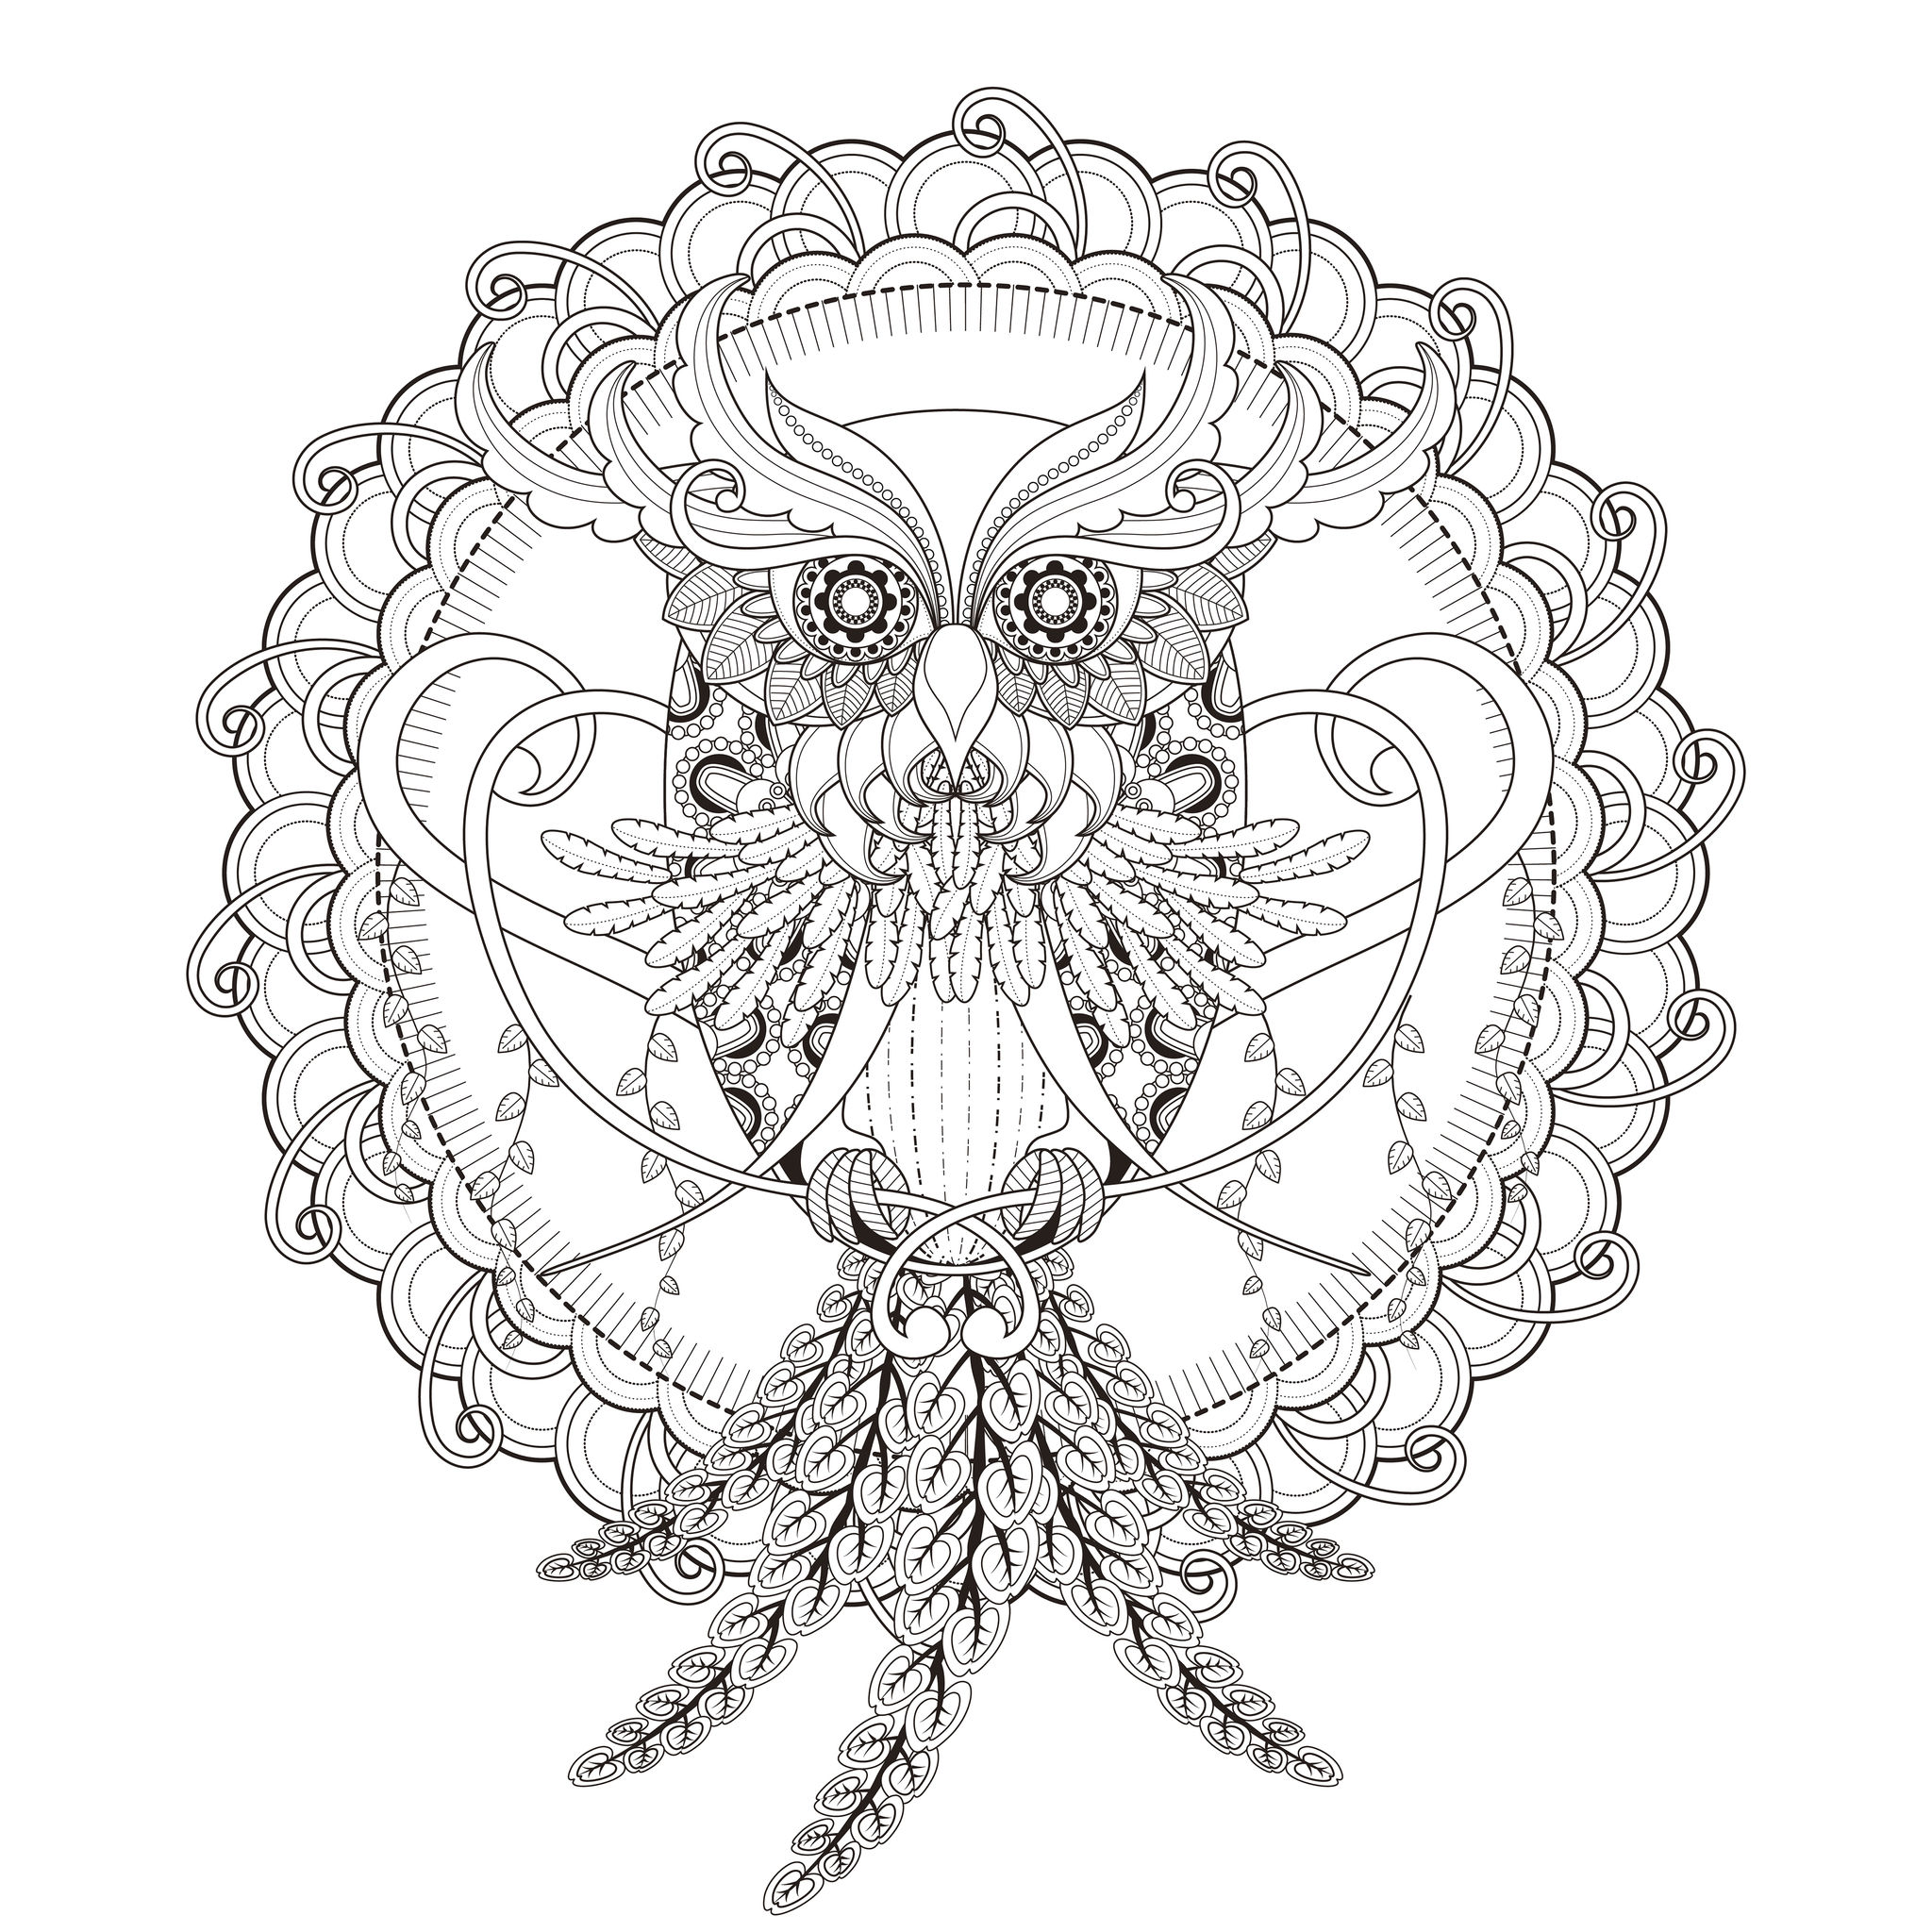 A beautiful Mandala coloring page, of great quality and originality. It's up to you to choose the most appropriate colors to give life to this superb owl. You must clear your mind and allow yourself to forget all your worries and responsibilities.